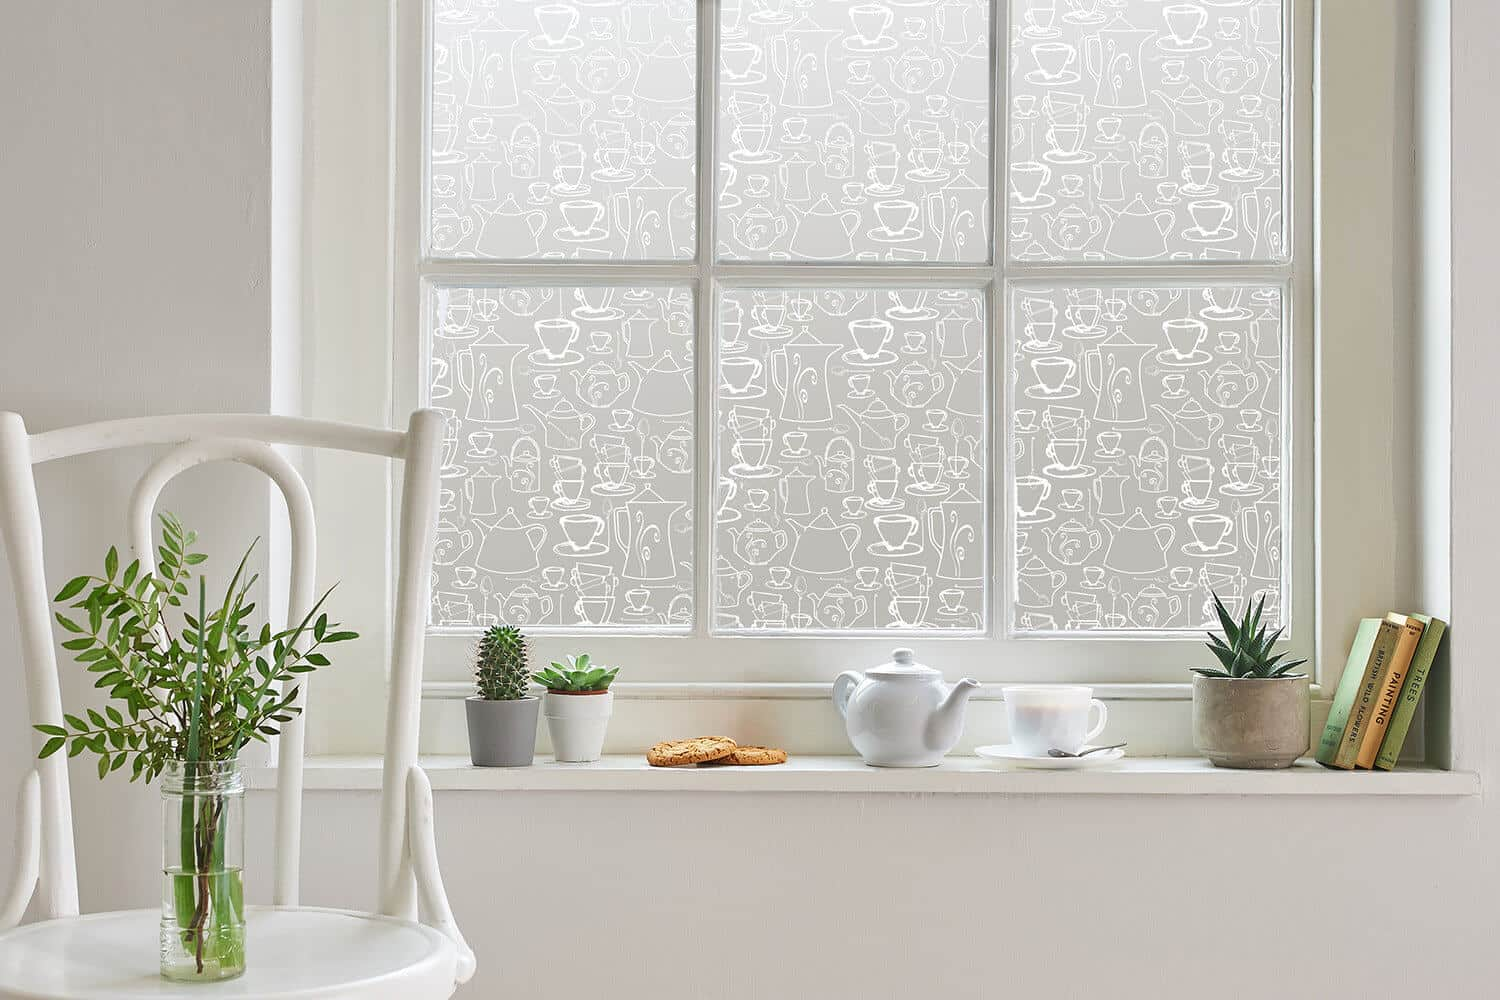 Studio sash windows used to show window film designs by Helen Russell Creations and printed by the Window Film Company